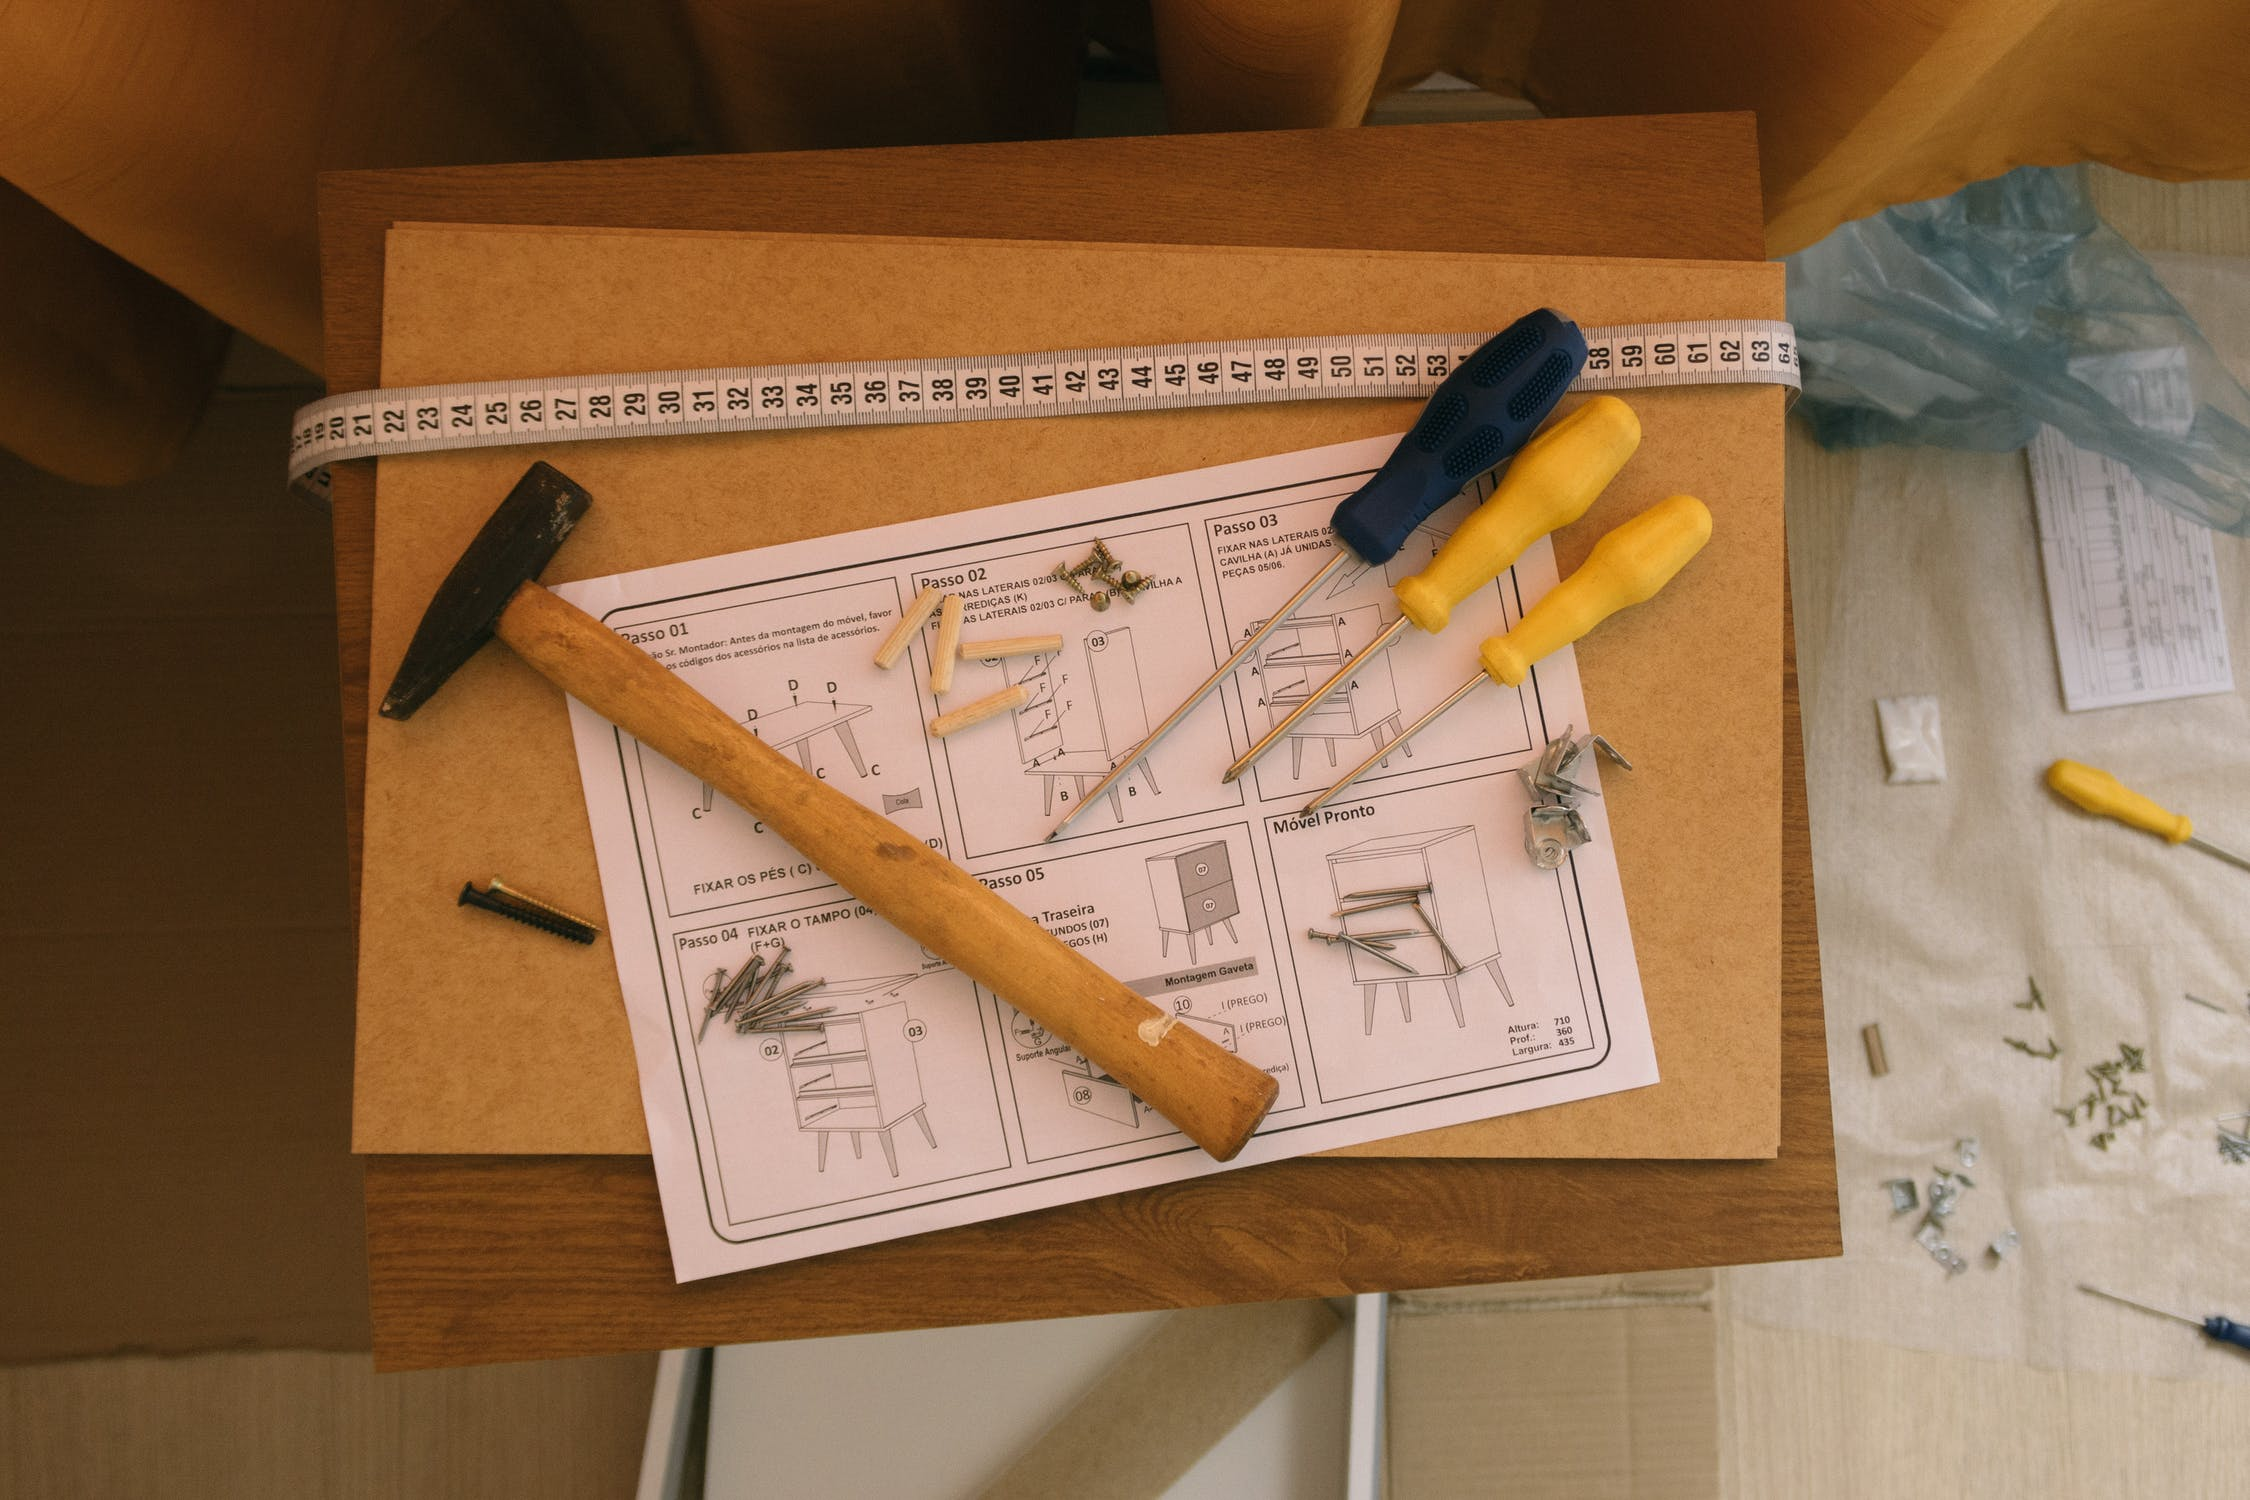 Instructions and tools to build